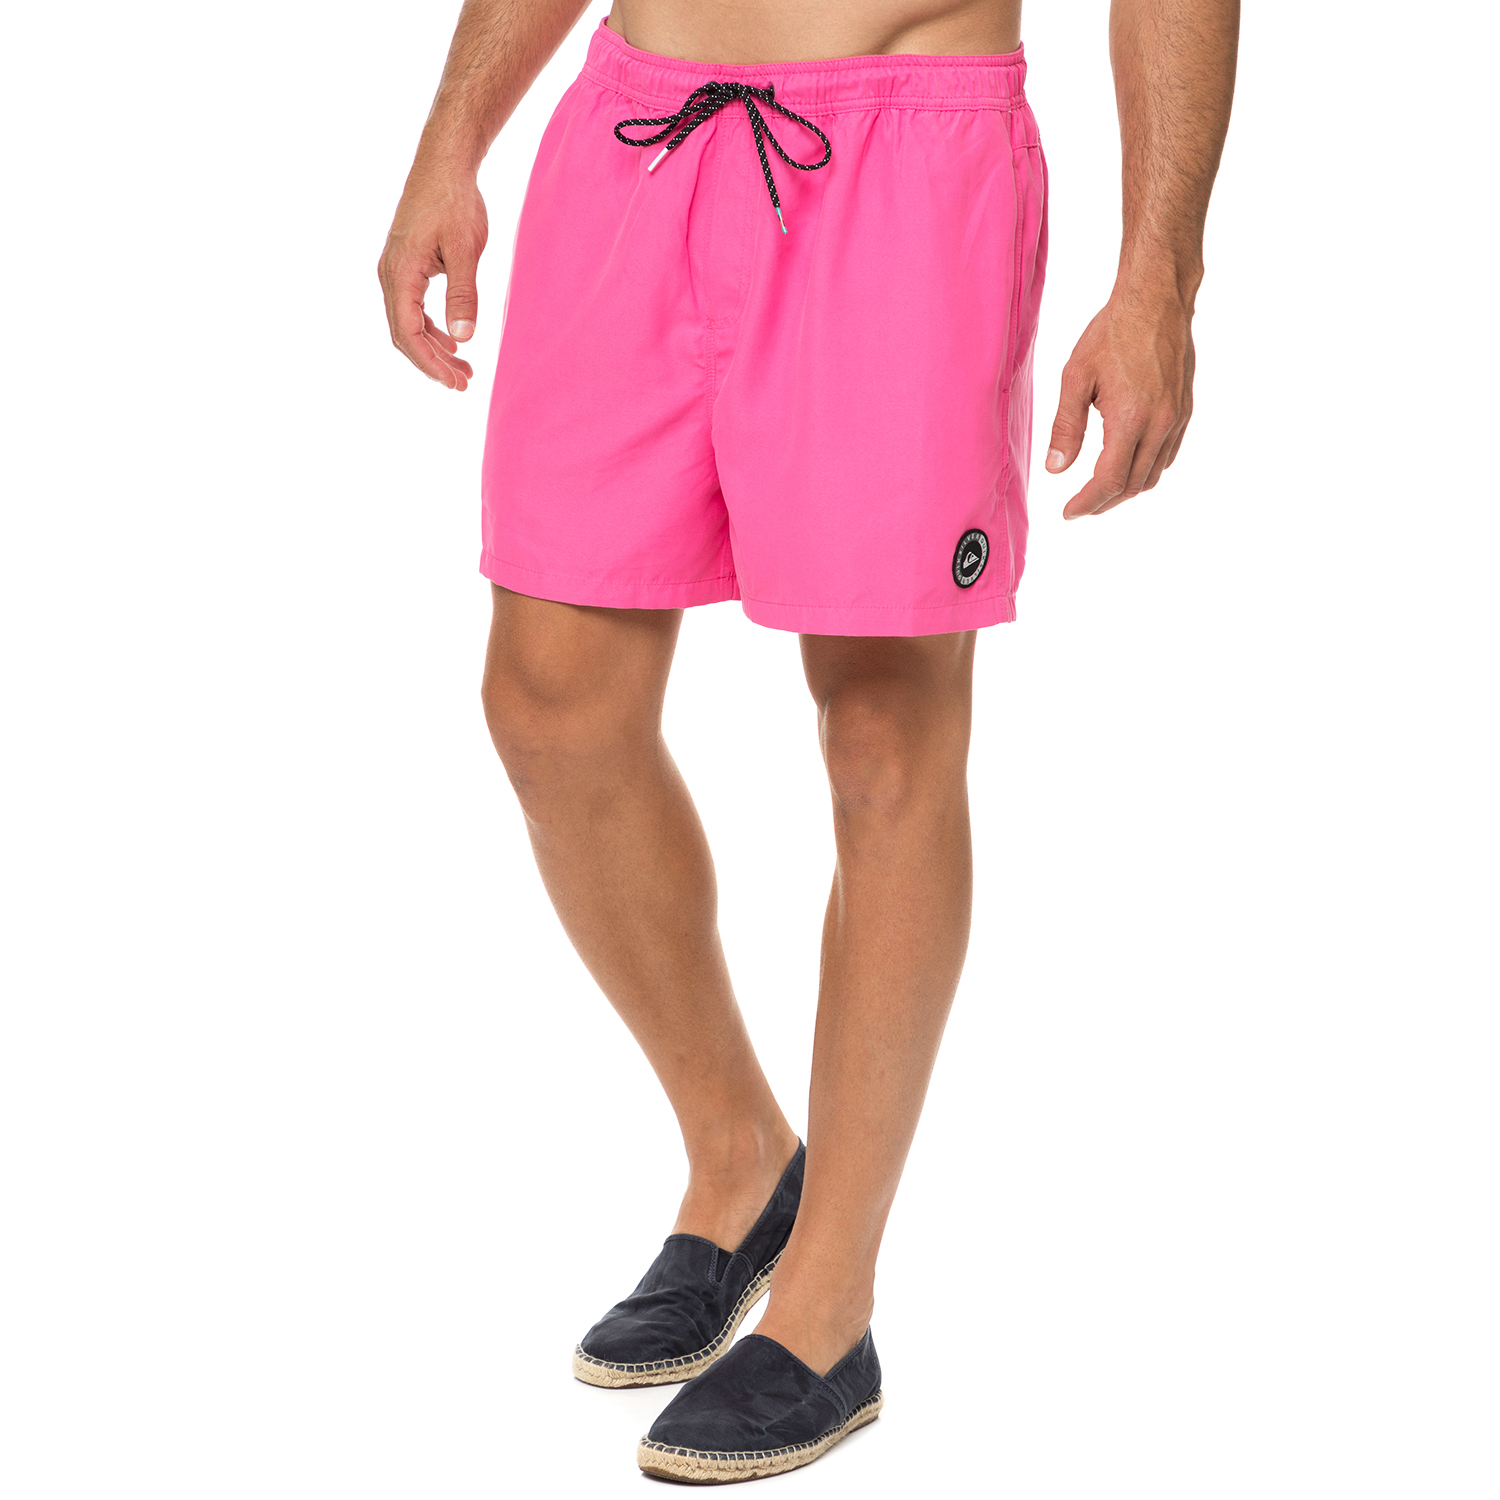 07c06959f8 QUIKSILVER - Ανδρικό μαγιό σορτς QUIKSILVER EVERYDAY VOLLEY 15   ροζ ...